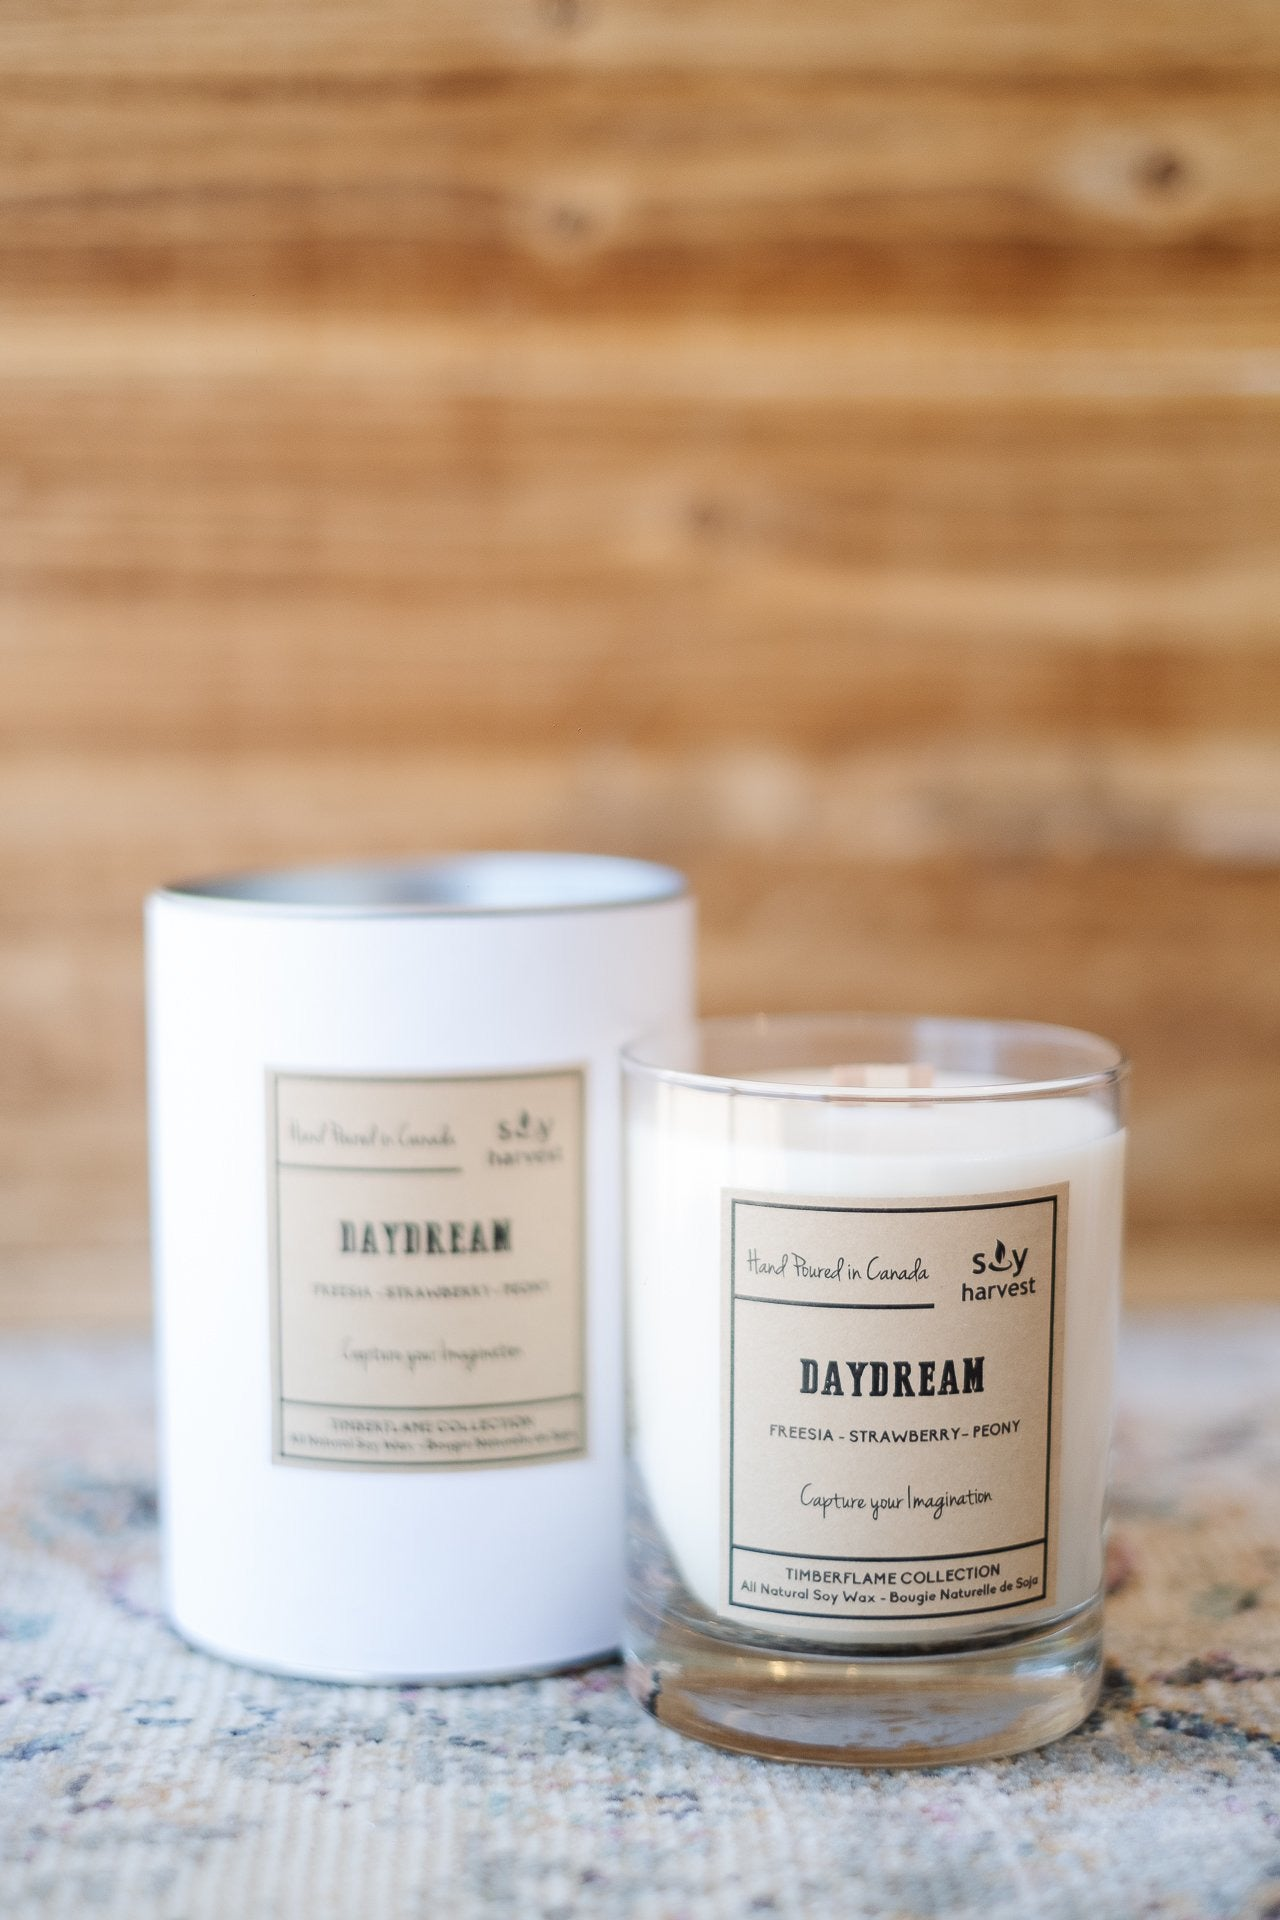 Daydream Soy Harvest Candle